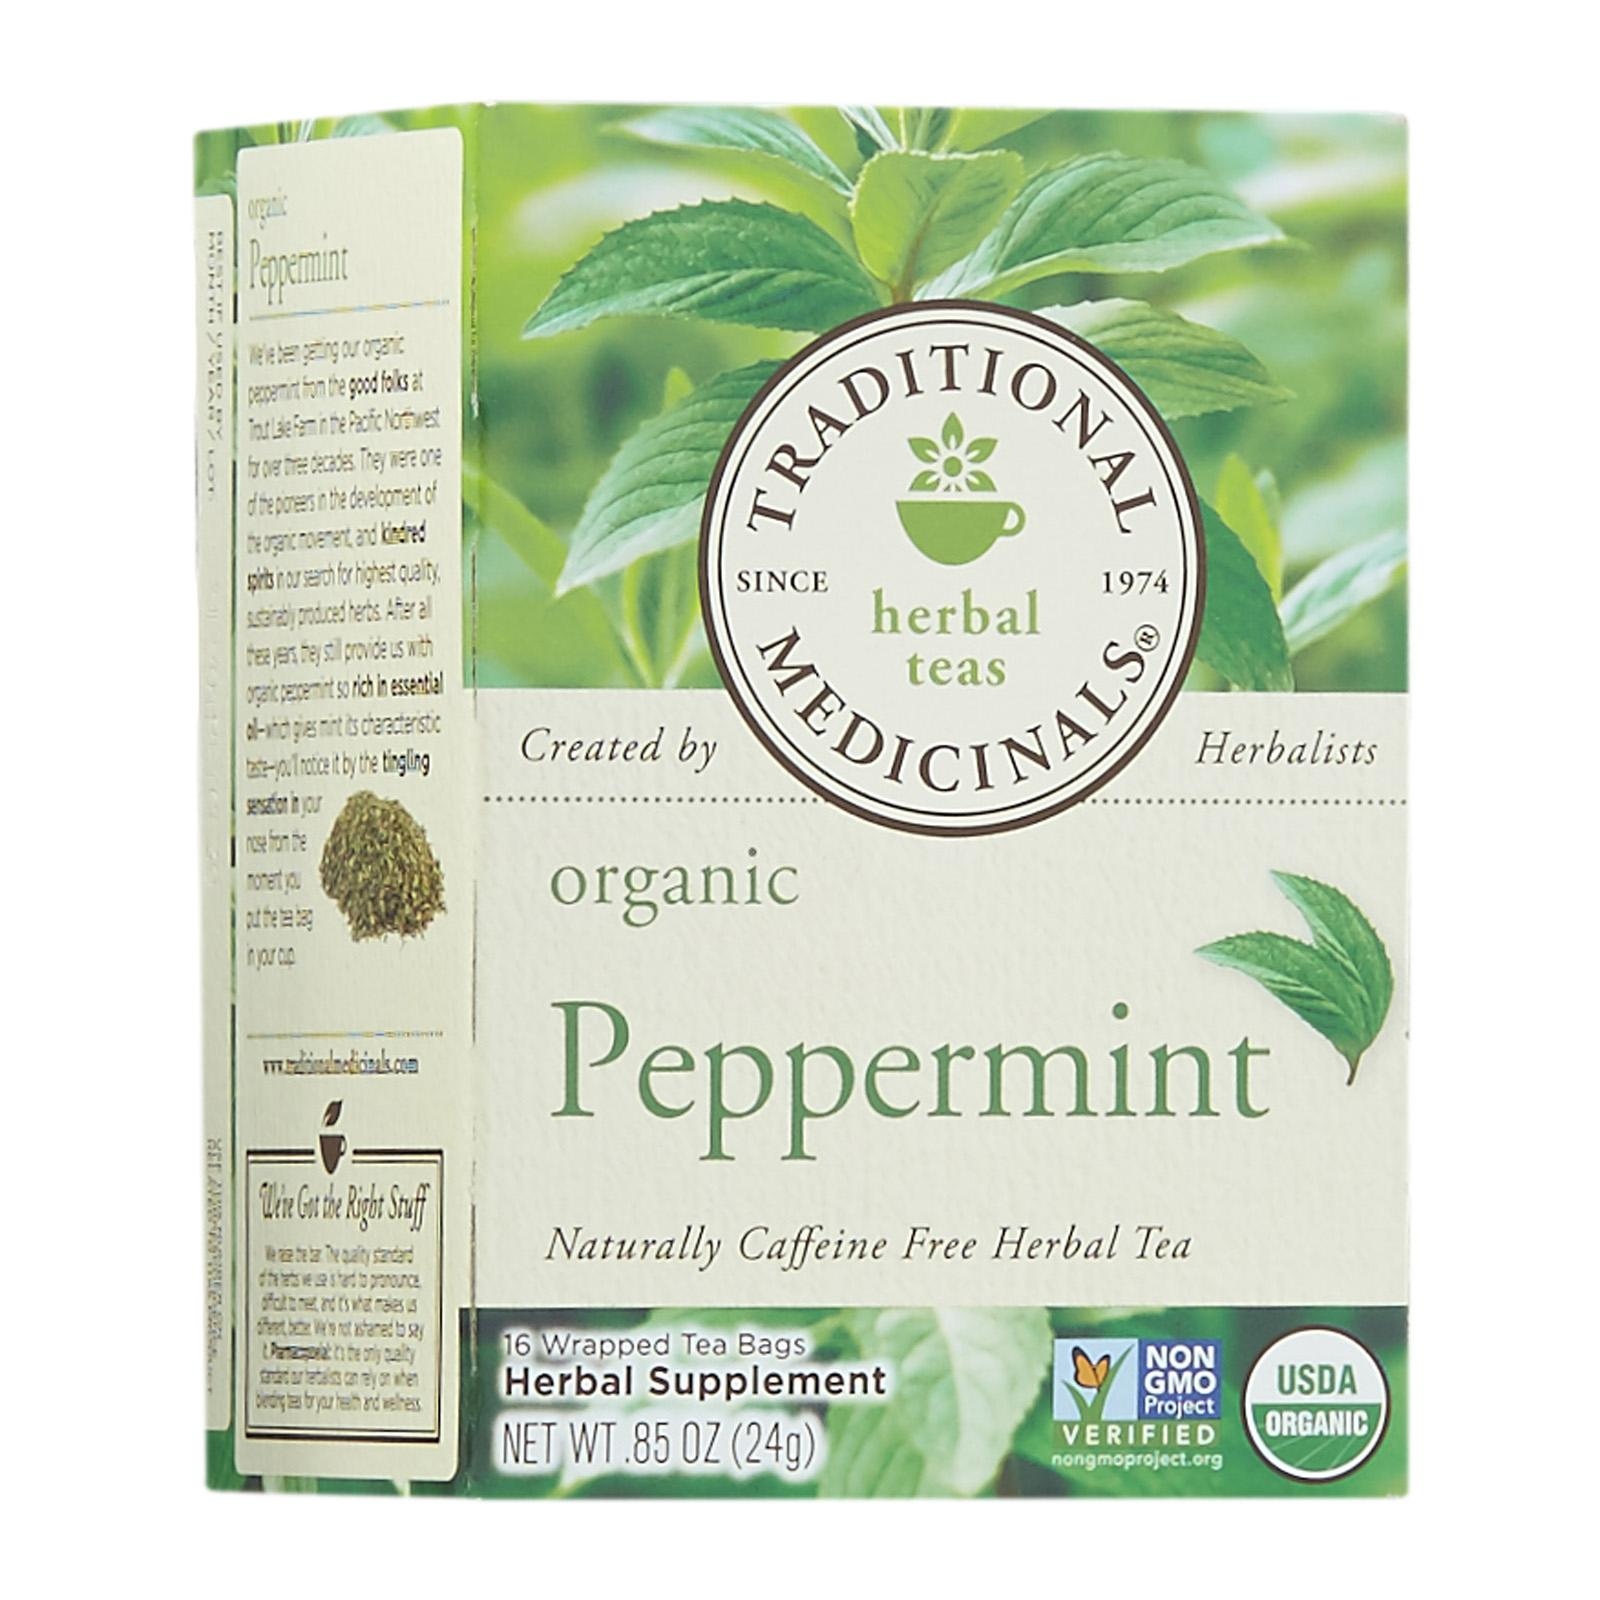 Traditional Medicinals Organic Peppermint Tea - By Wholesome Harvest By Redmart.